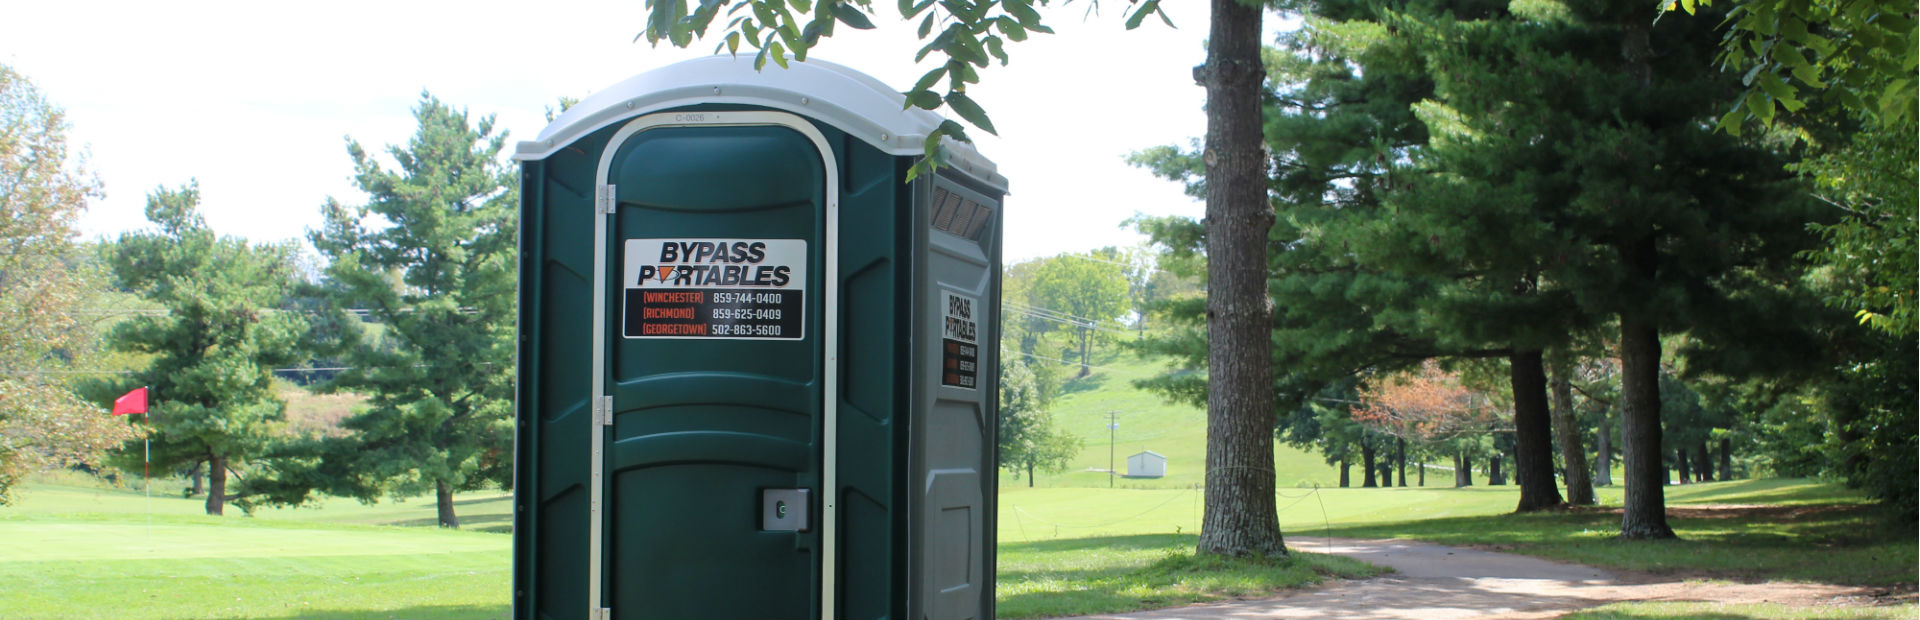 Portable Toilet Rentals in Georgetown, Winchester, Richmond KY